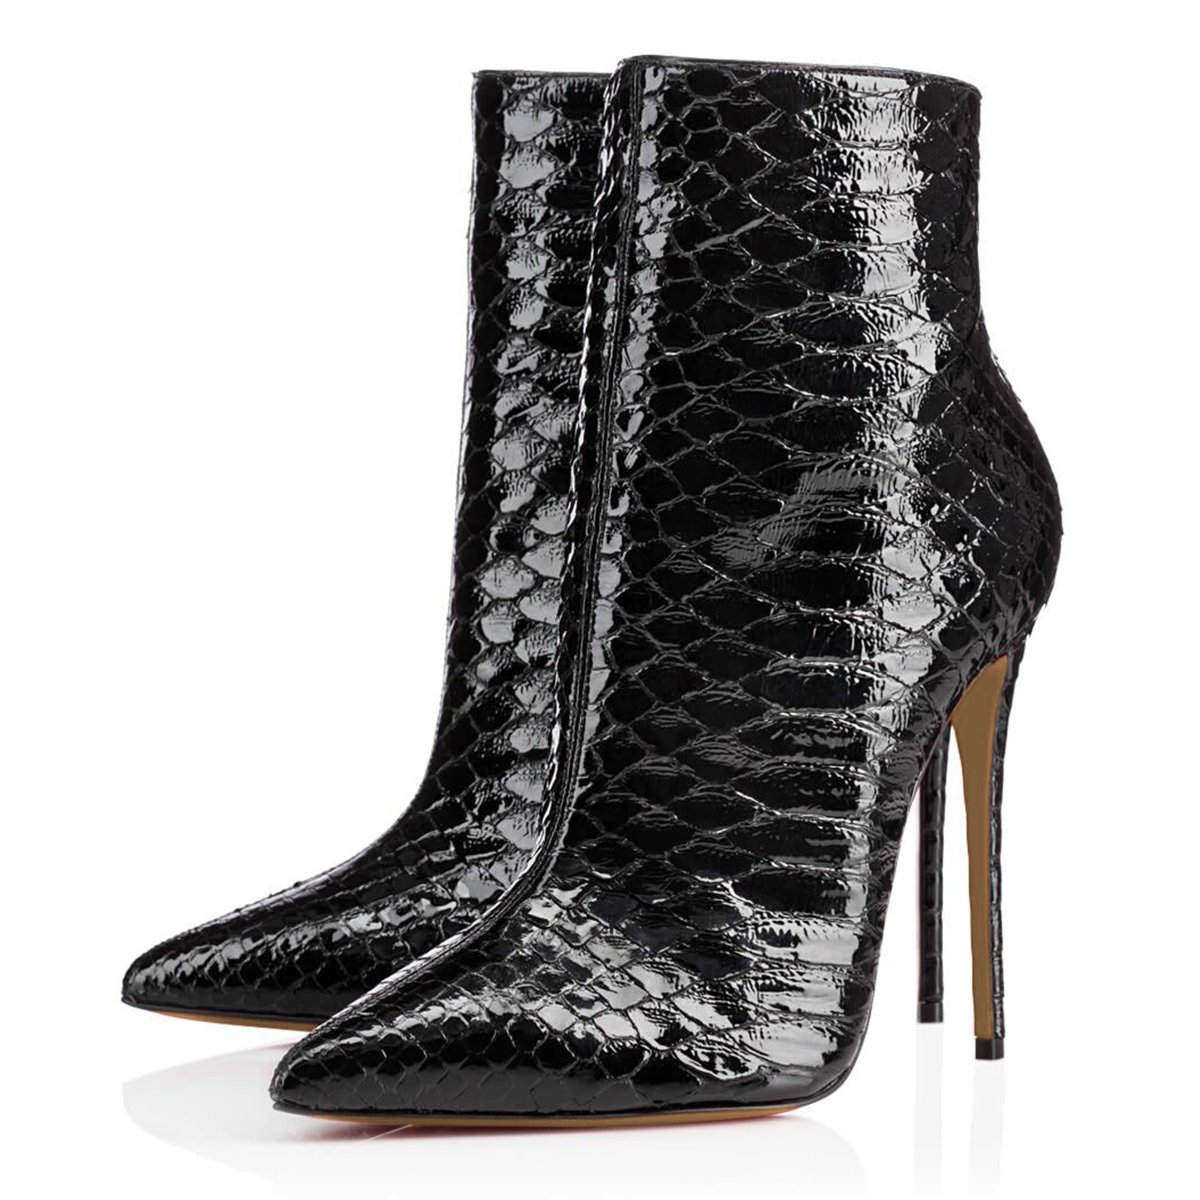 FSJ Women Fashion with High Heel Ankle Boots with Fashion Rivets Pointed Toe Stilettos Zipper Shoes Size 4-15 US B07F71VR67 6 B(M) US|Black Snake 9e29f1